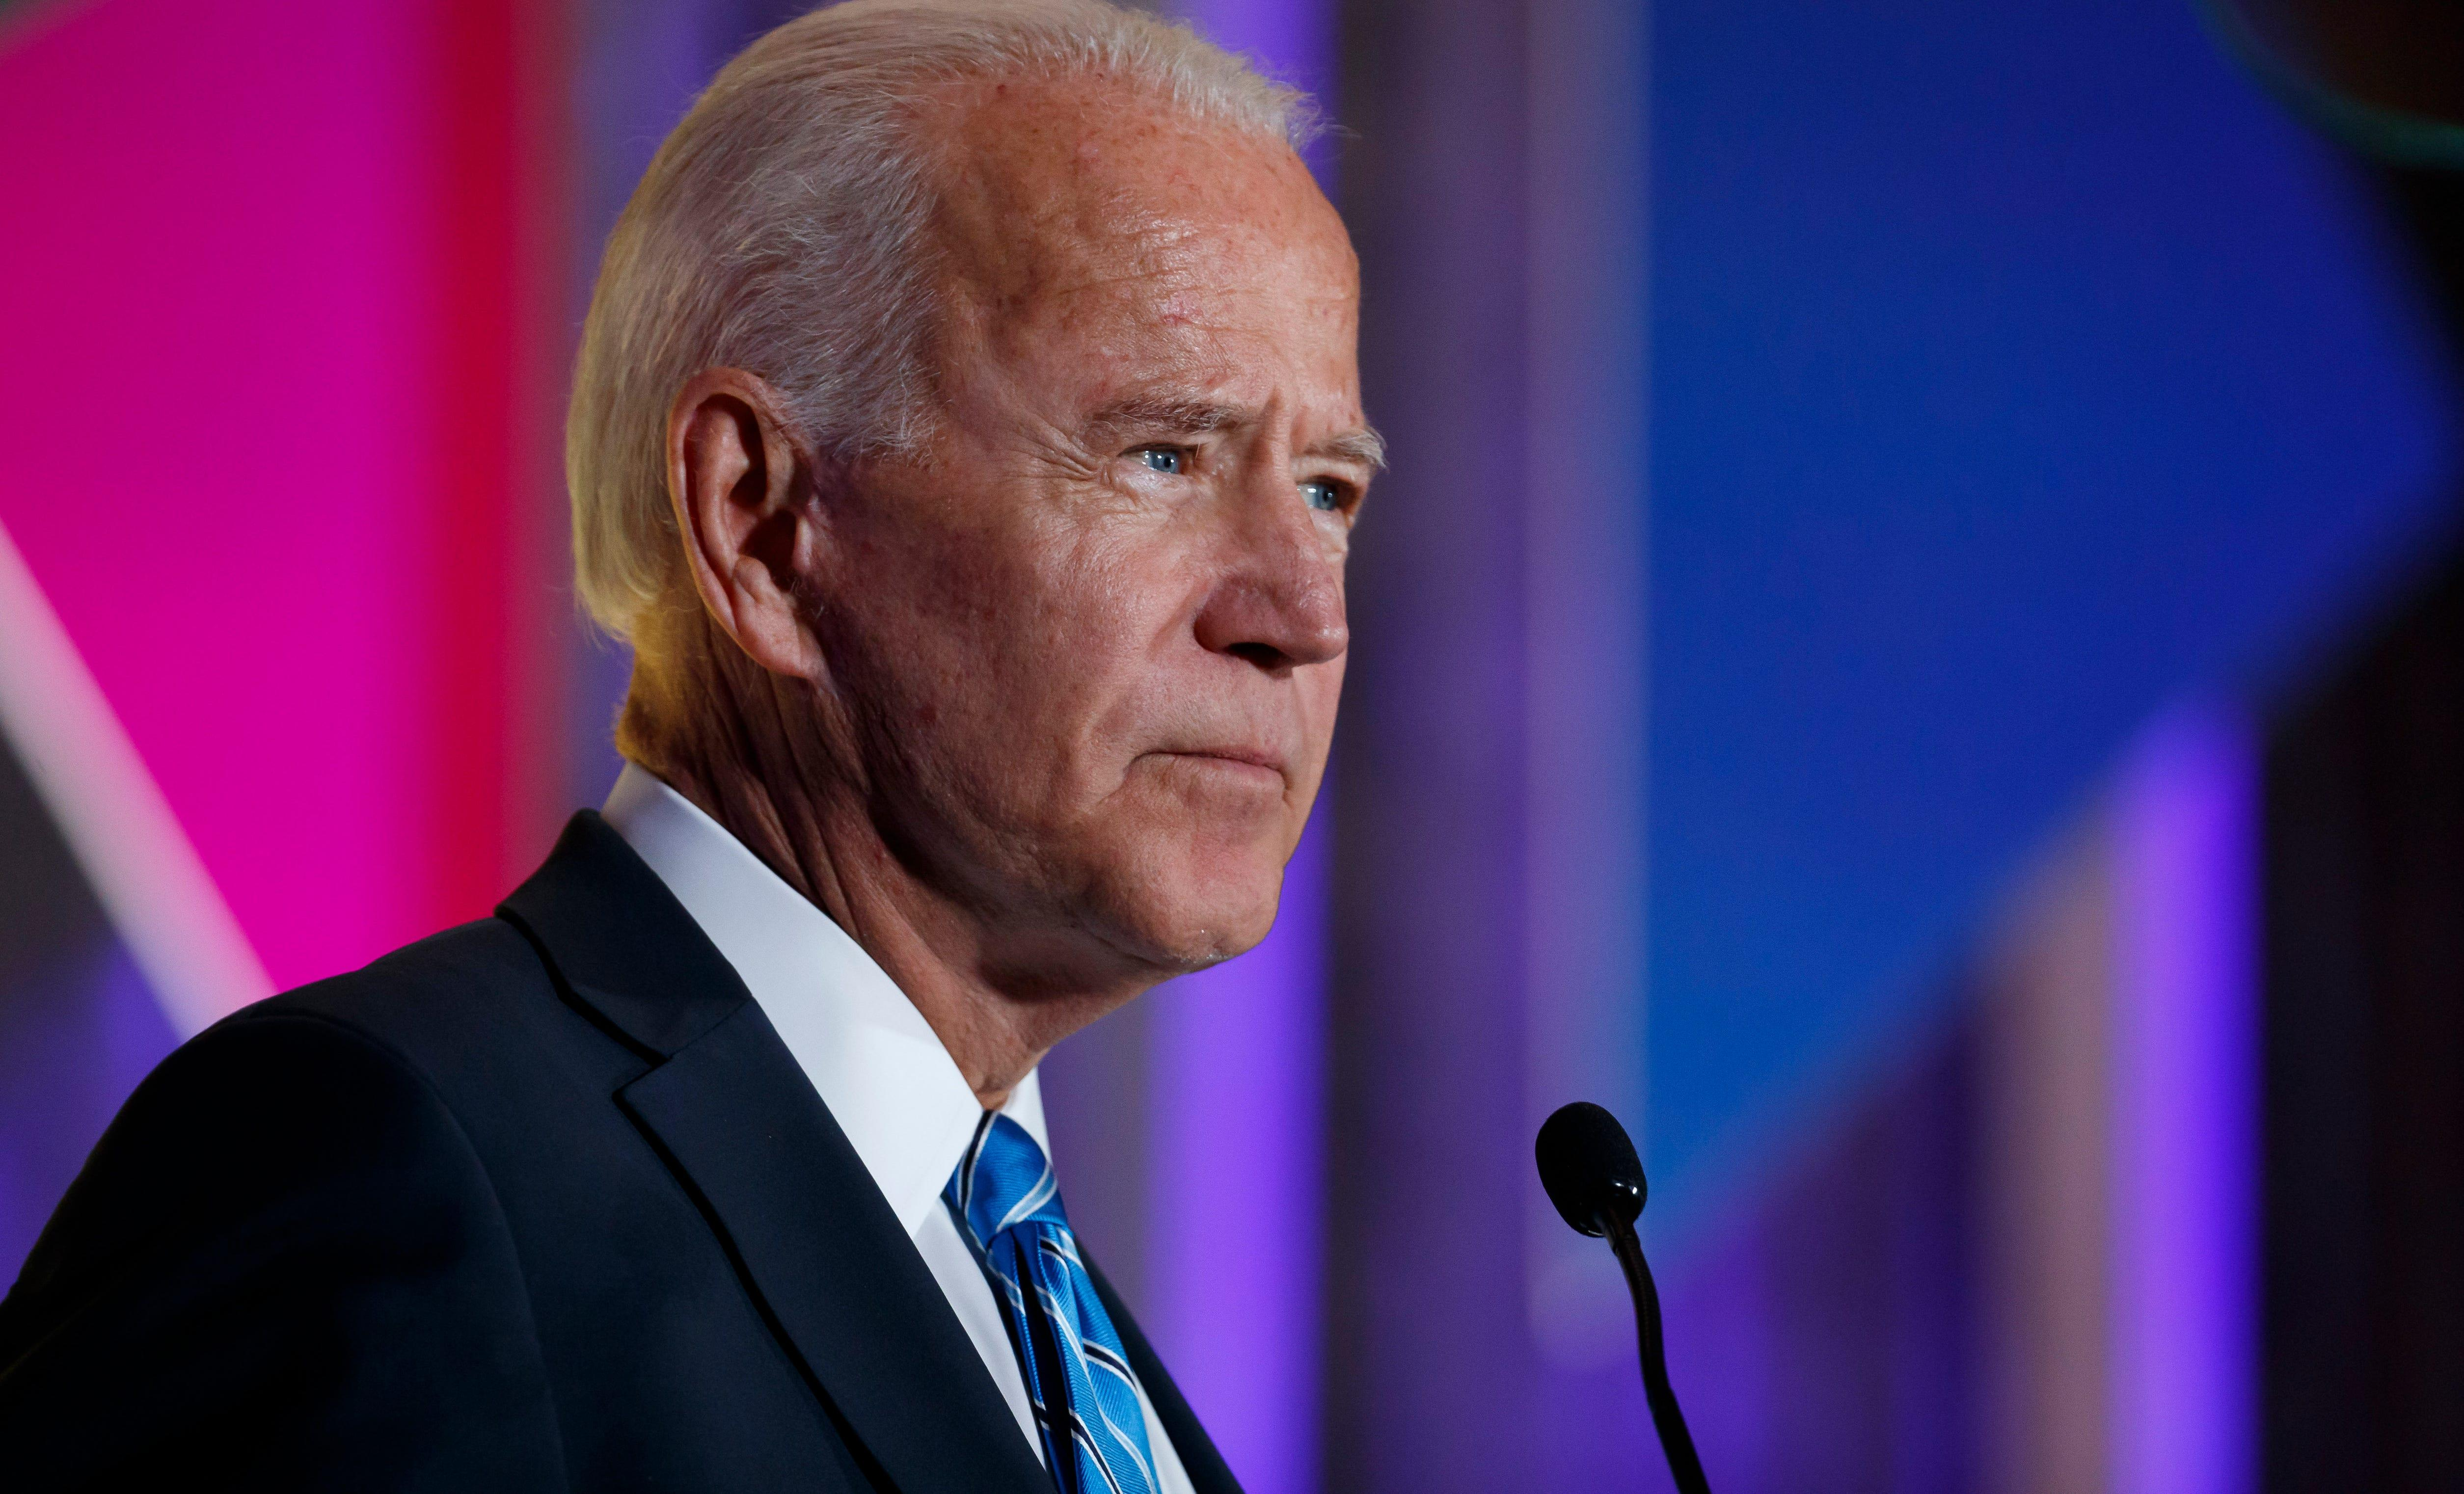 Joe Biden comes out against 'defund the police' push amid mounting attacks from Trump after George Floyd protests